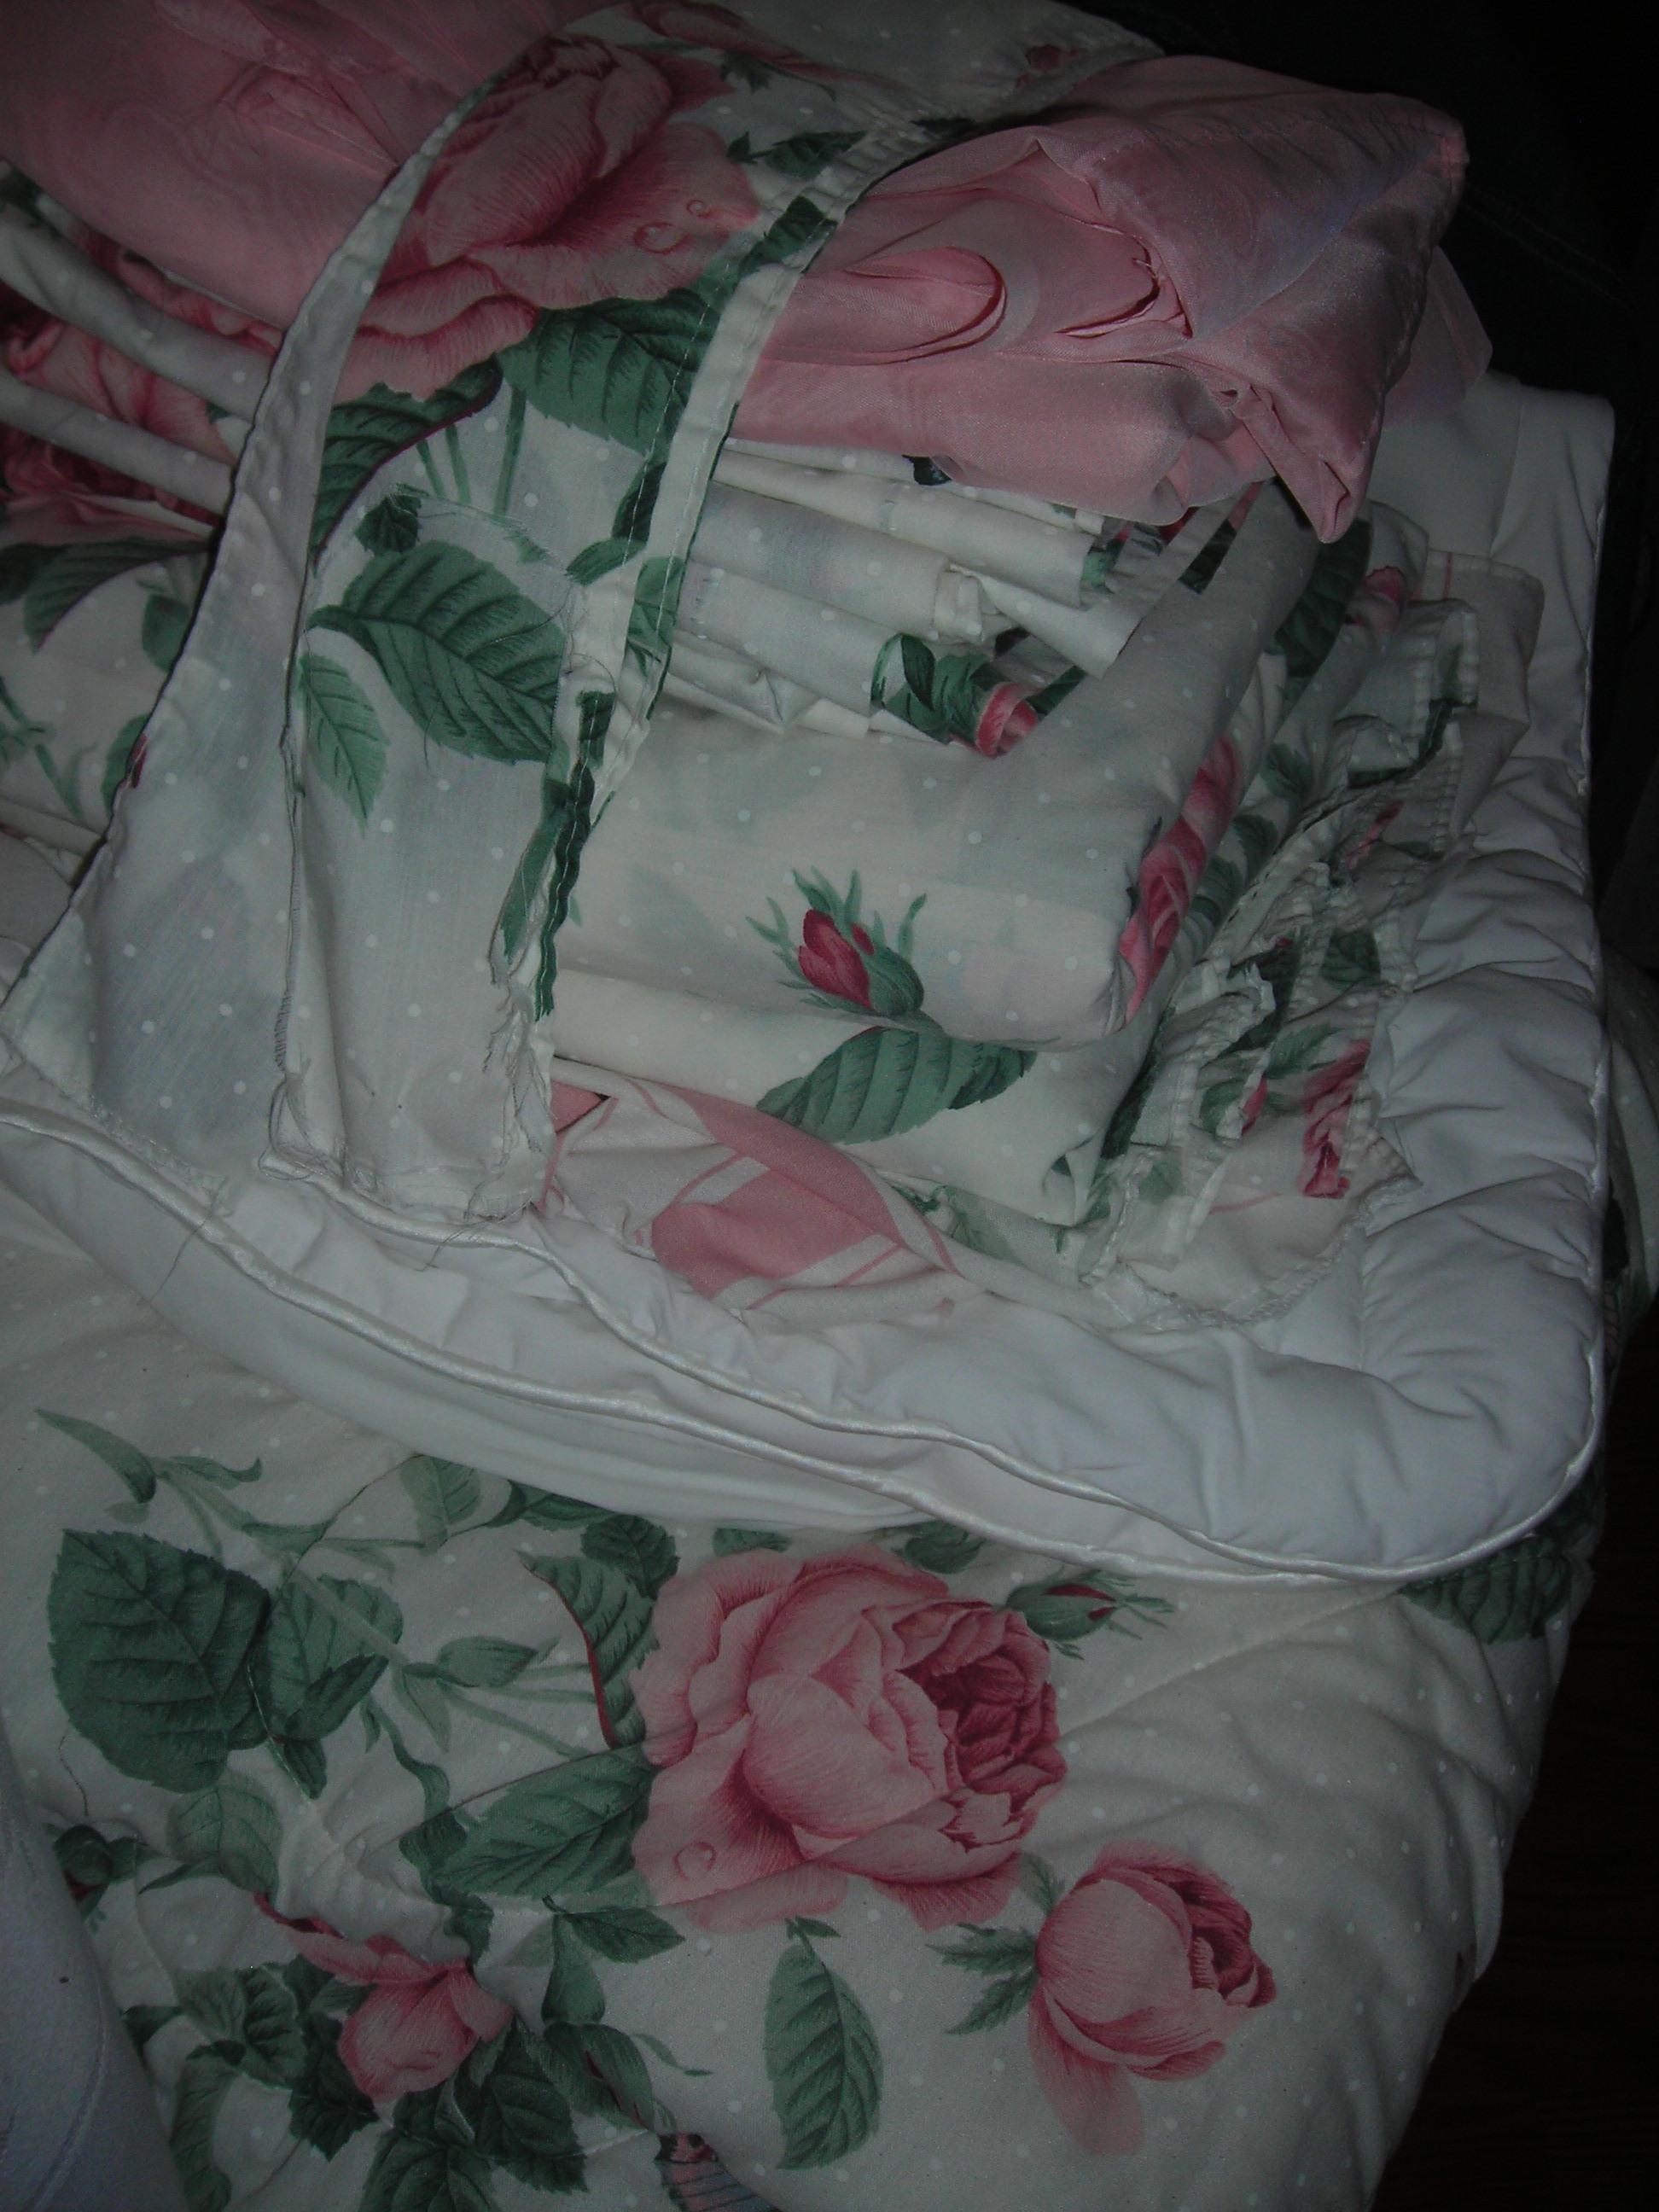 yummy pink rose comforter and curtains and sheets